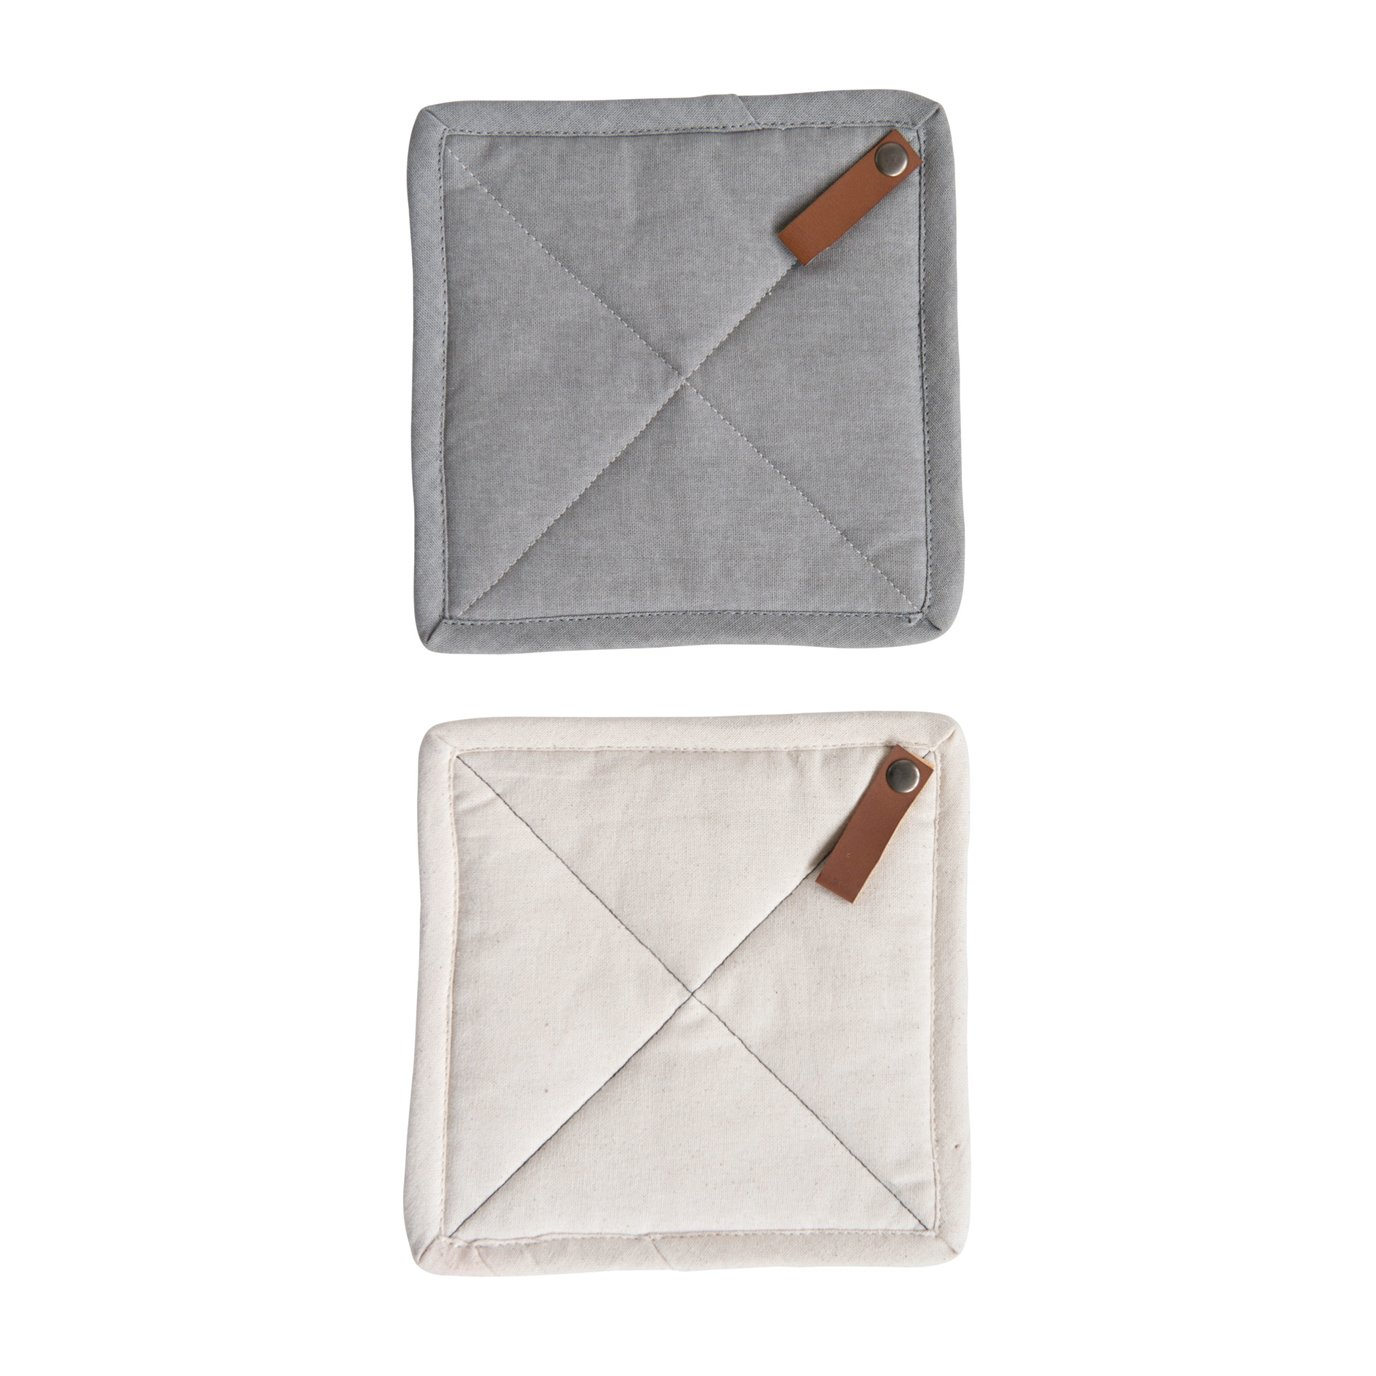 Square Cotton Pot Holder with Leather Loop (Set of 2 Colors)